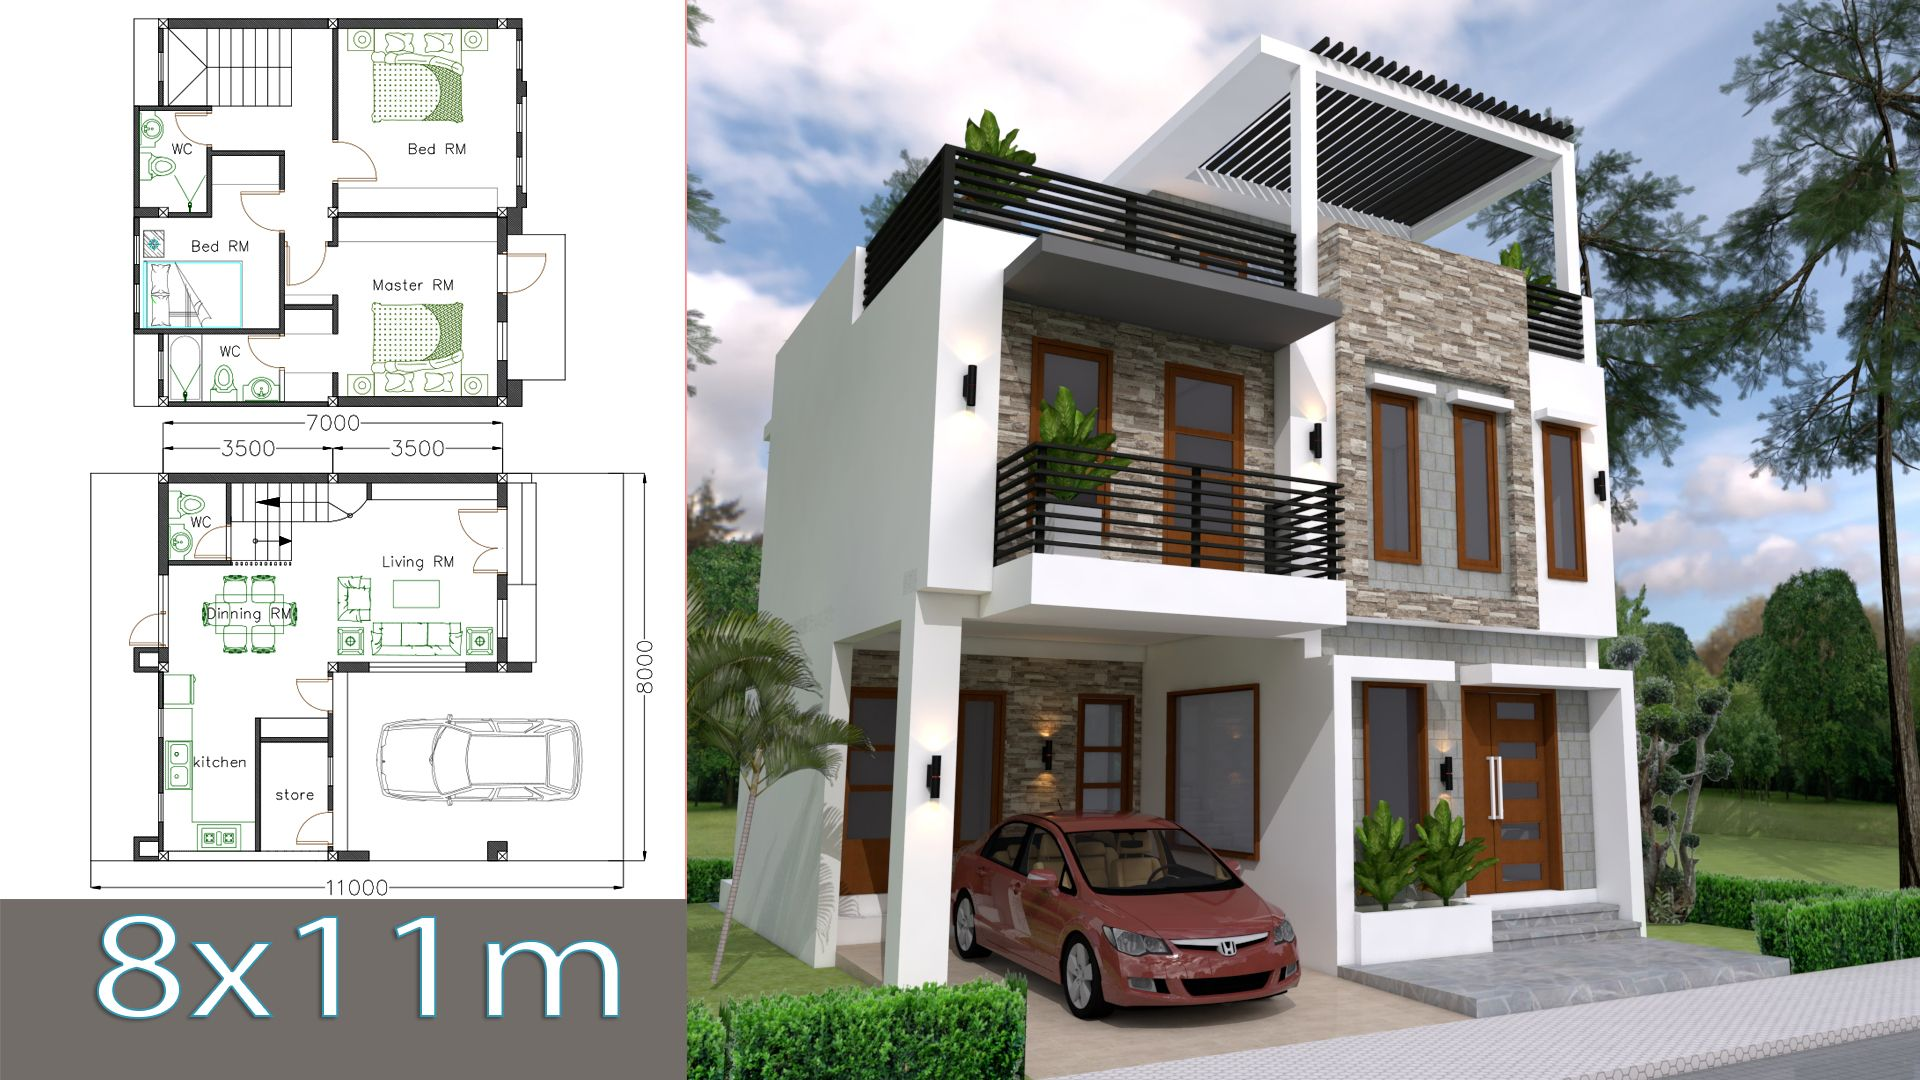 Home design plan   with bedrooms samphoas plansearch also   favorite house rh pinterest